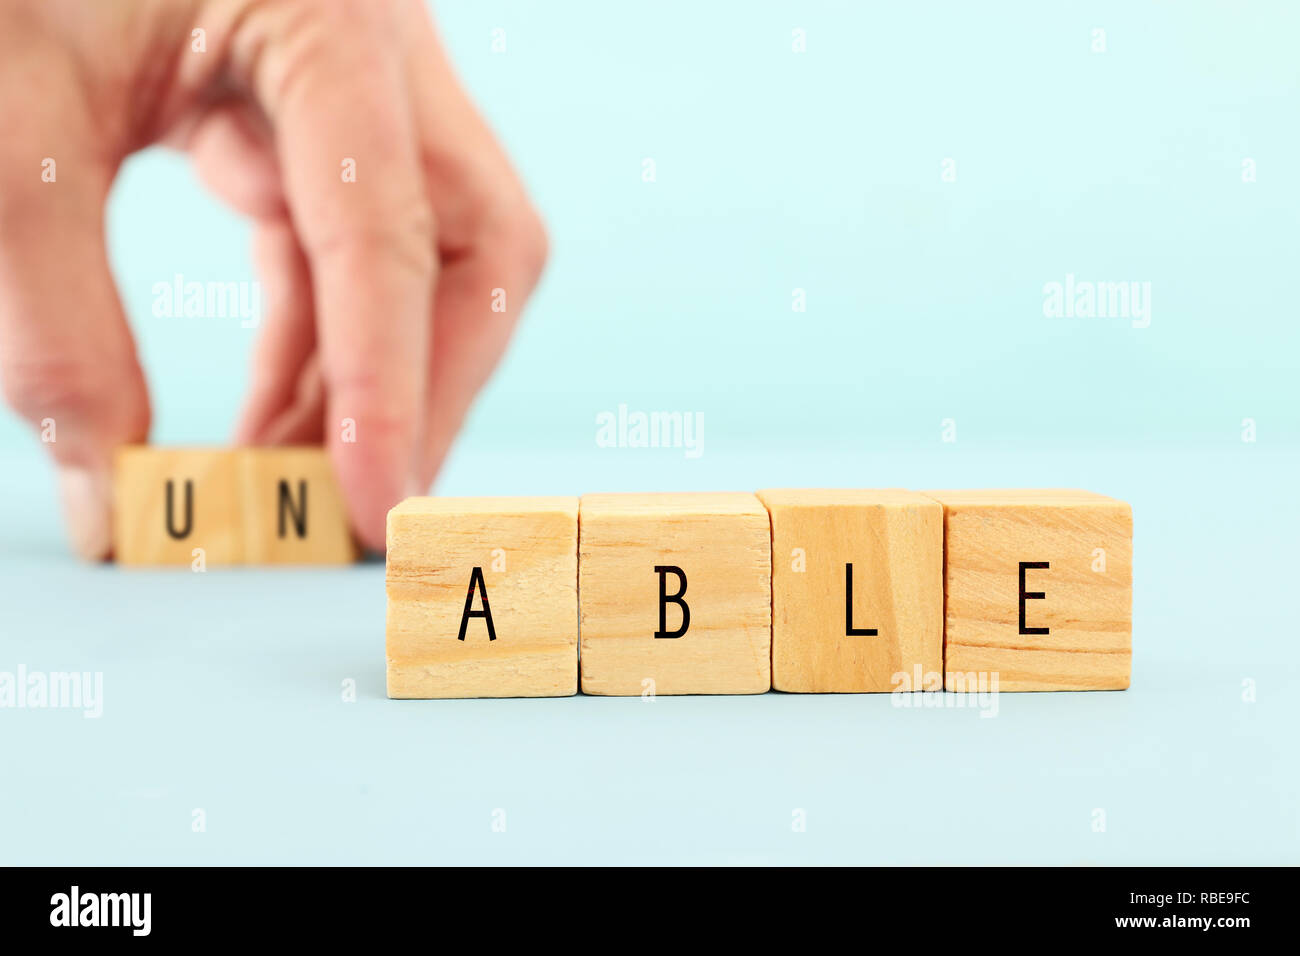 man hand spelling the text unable with wooden cubes, taking out the word un so it written able. success and challenge concept - Stock Image